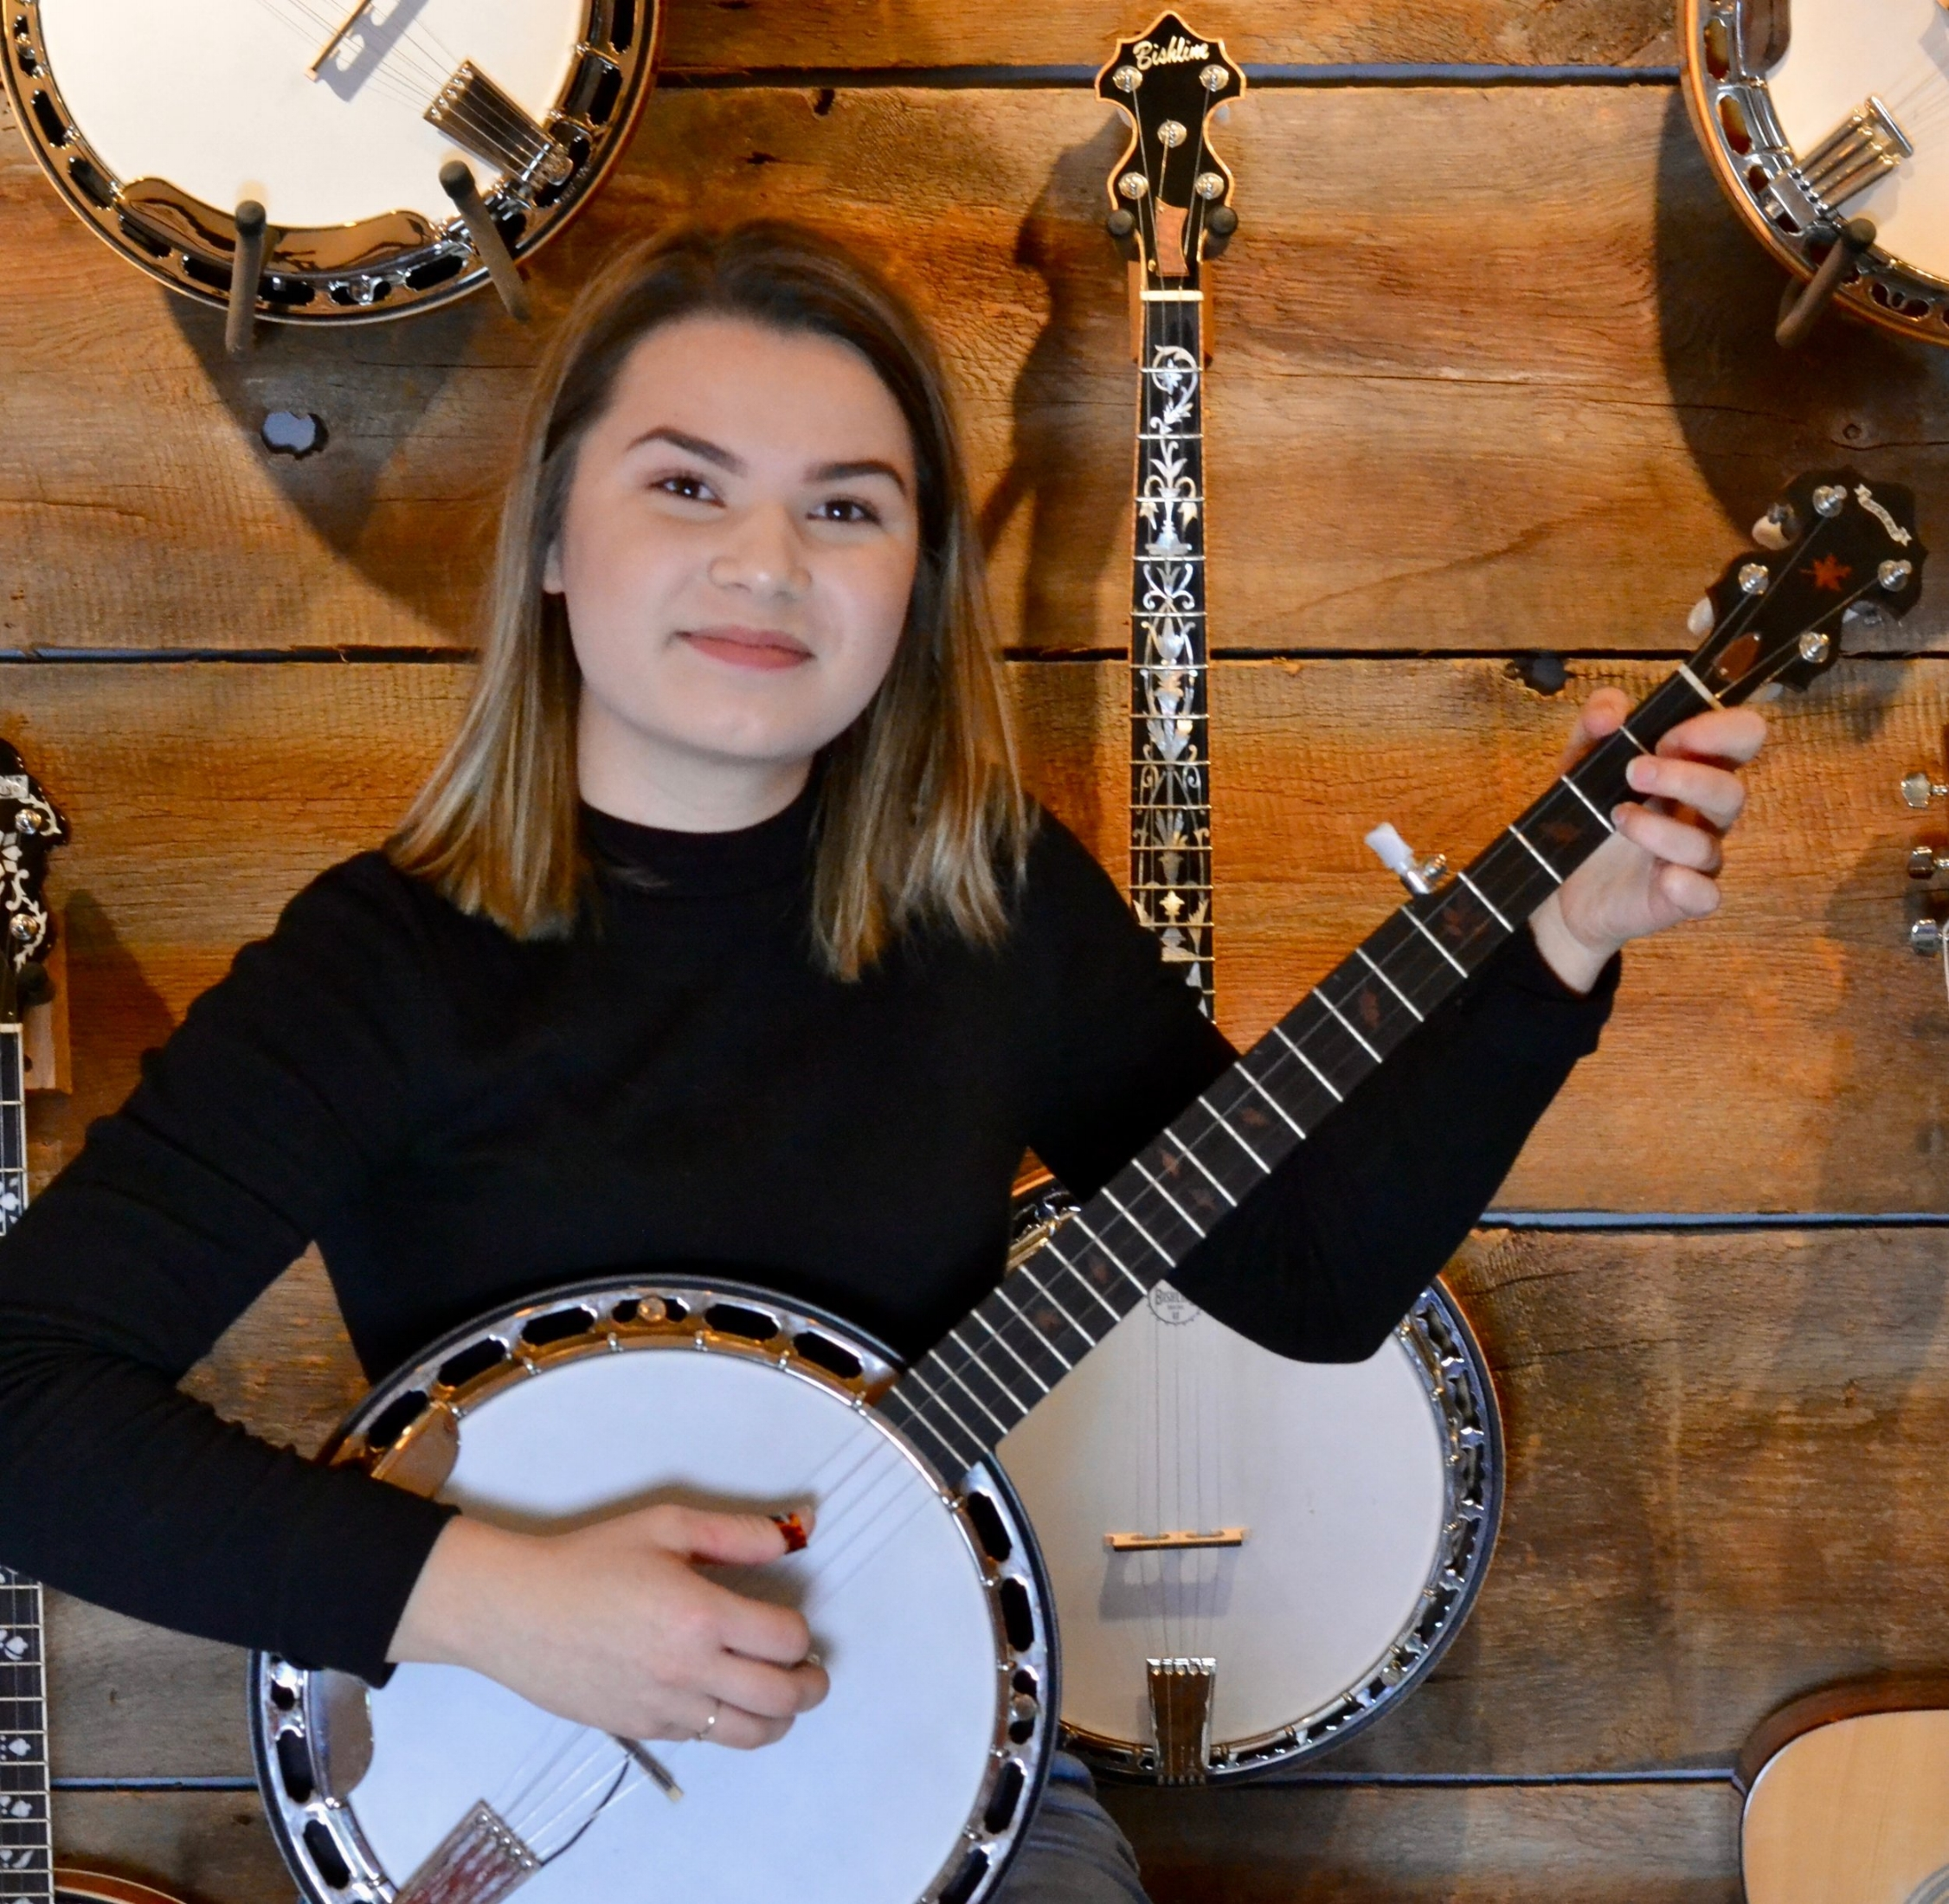 KAYLA BENDER  FIDDLE/VIOLIN, BANJO  Kayla is a super talented musician who has studied for 10 years with Tulsa's finest instructors. Her knowledge and teaching skills are beyond her years!